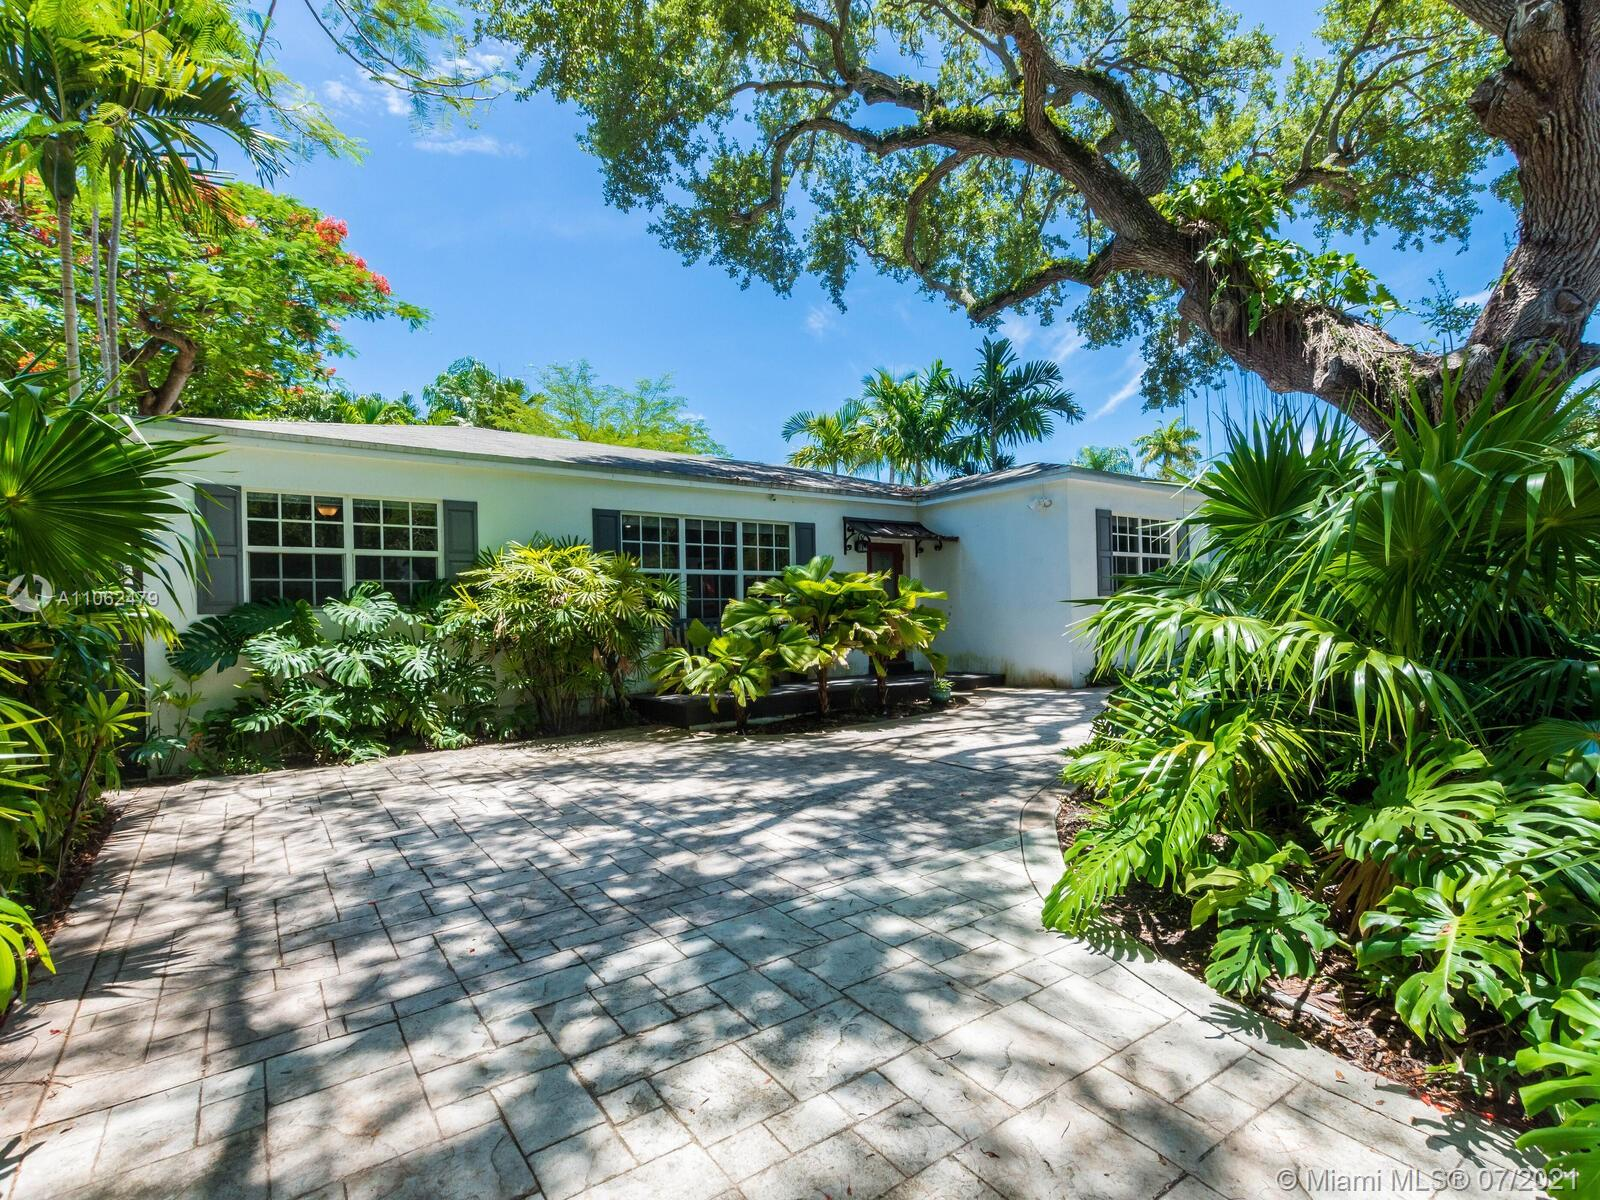 SELLER MOTIVATED with over $230,000 in upgrades! Step into this delightfully renovated North Coconut Grove home. Enjoy the best of the charming Grove lifestyle with everything that you need including a new roof, impact windows, new plumbing, chef's kitchen with a gas stove, stainless steel appliances and gorgeous hardwood/ Spanish tiled floors. This home boasts an open floorplan, an exceptional lot size and a luxurious backyard private oasis. The location is unbeatable with a short 5-minute drive from Brickell. Walk everywhere from this home from parks to restaurants. This home can easily be expanded to fit your design interests and even a second floor can be added to maximize value. The lot has plenty of room for a pool surrounded by lush landscaping - an entertainer's dream come true.